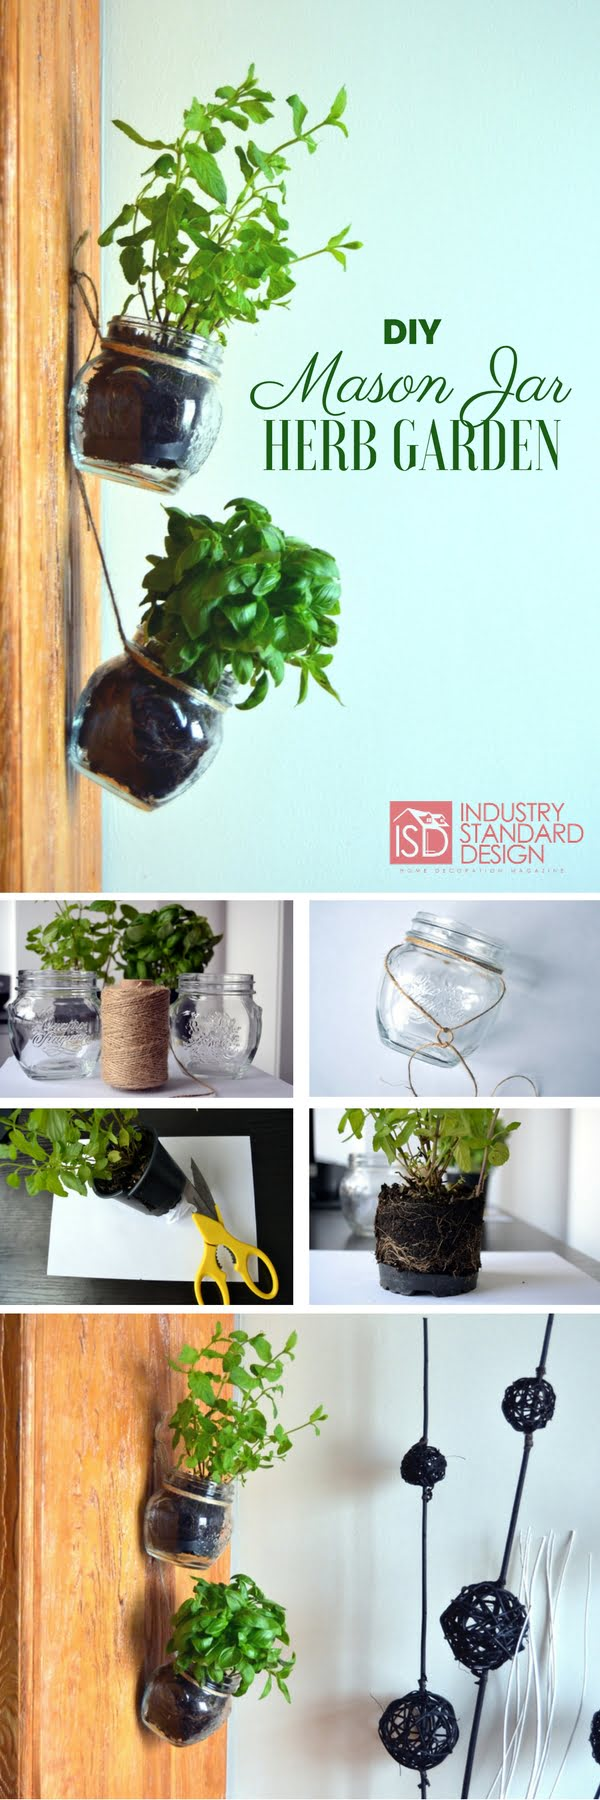 Check out the tutorial: #DIY Hanging Mason Jar Herb Garden